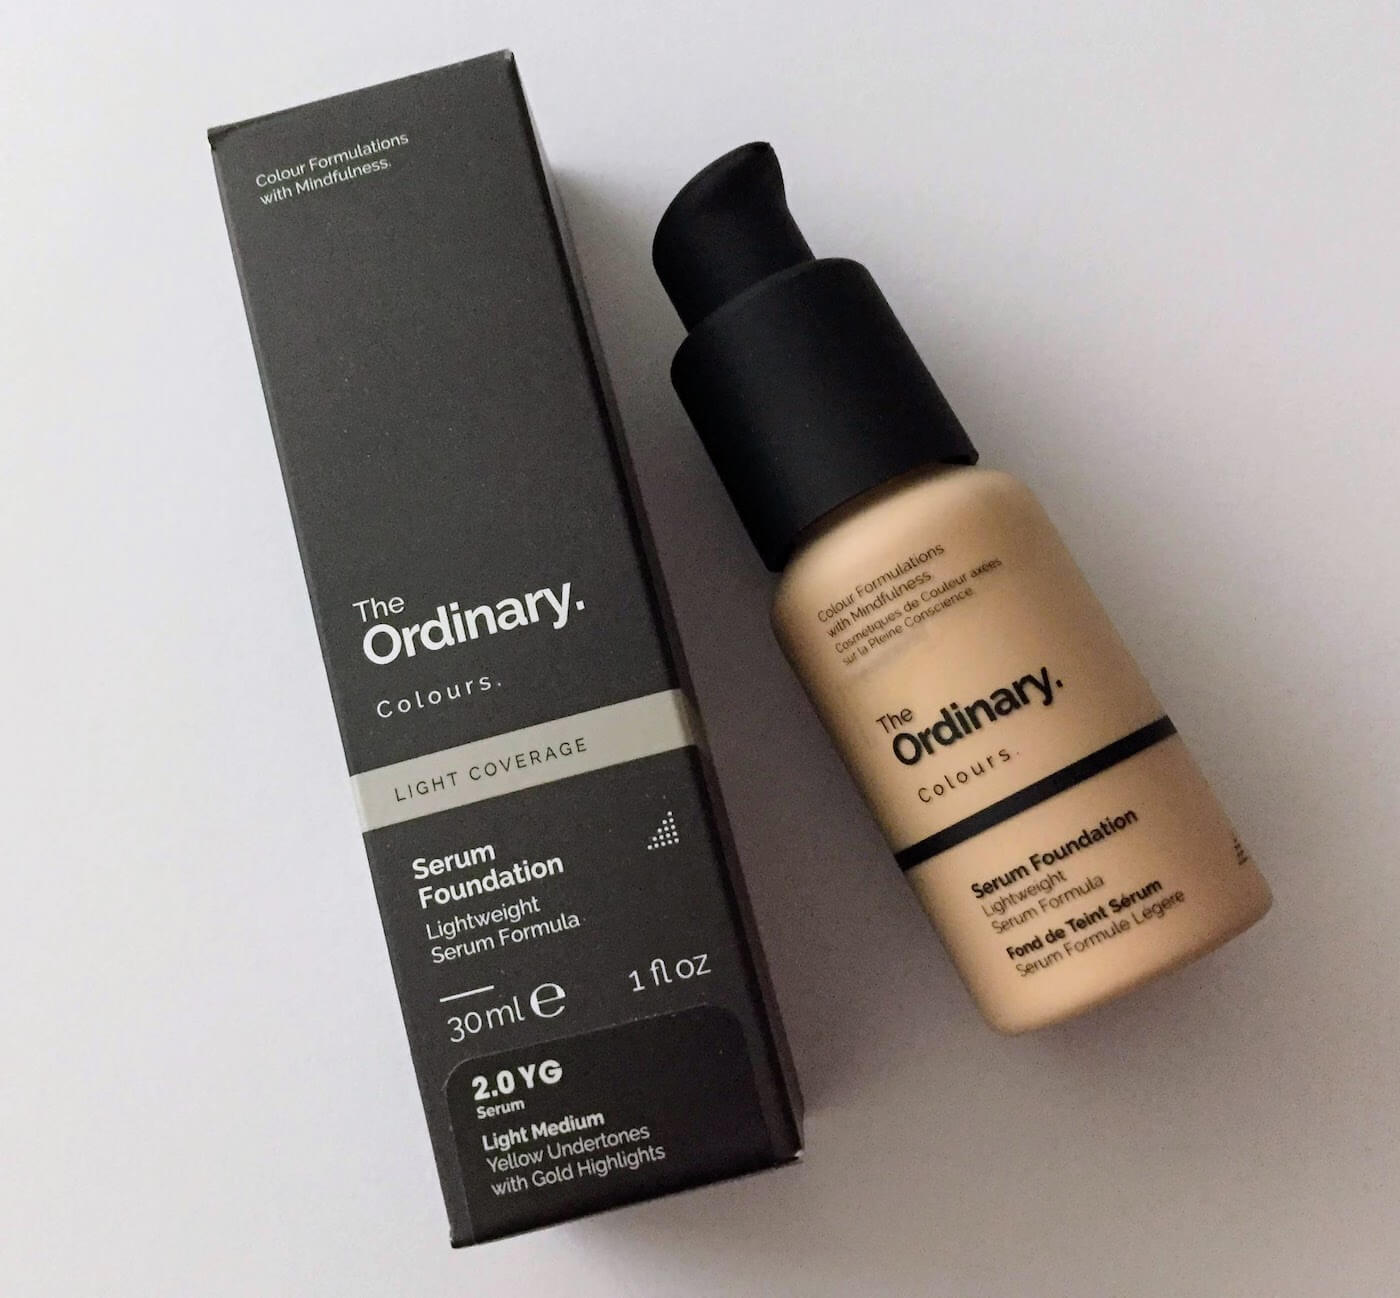 the ordinary serum foundation review for asians 2.0yg